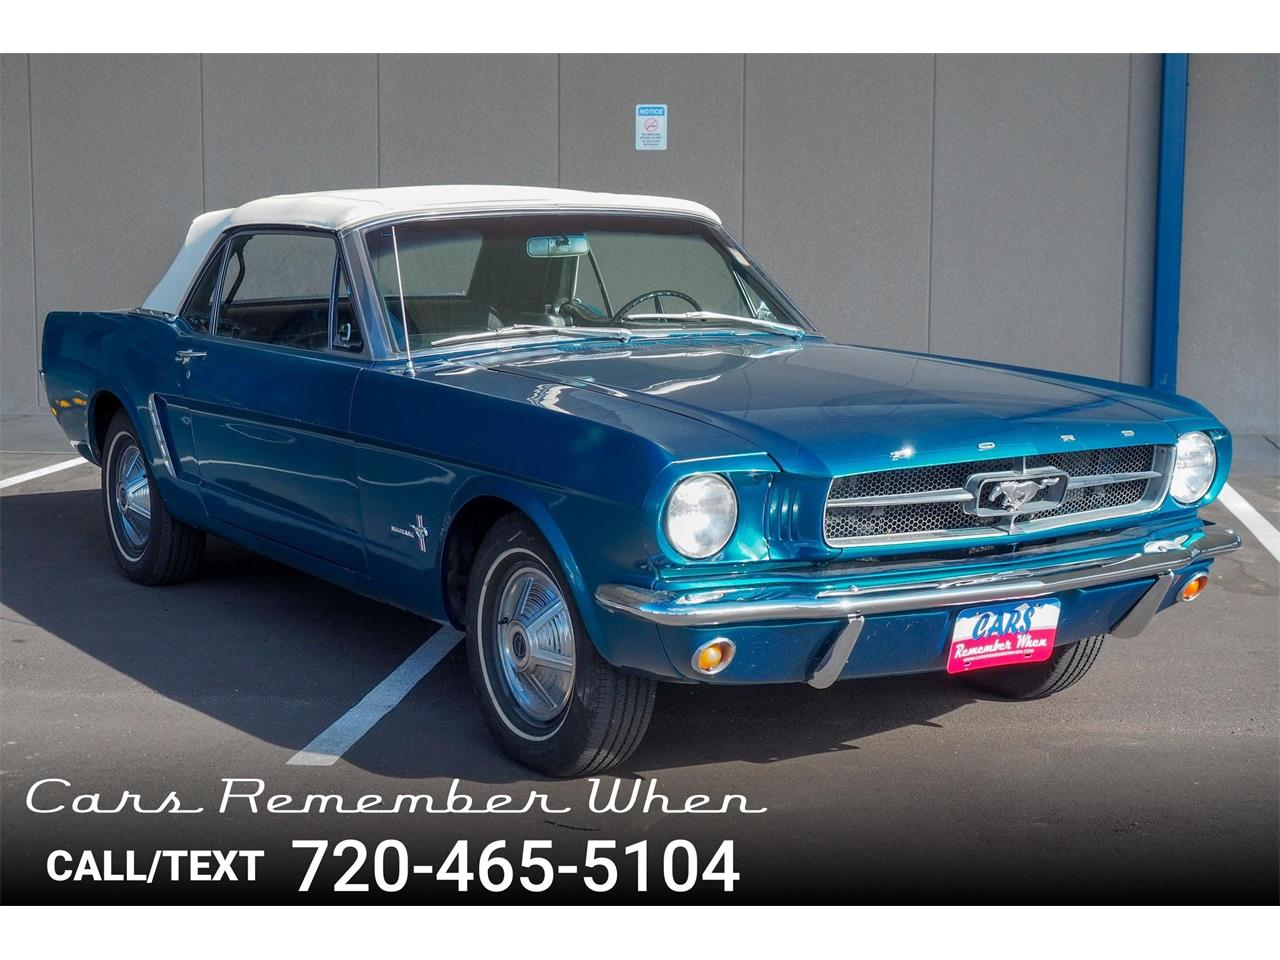 Large picture of classic 1964 mustang located in littleton colorado offered by cars remember when